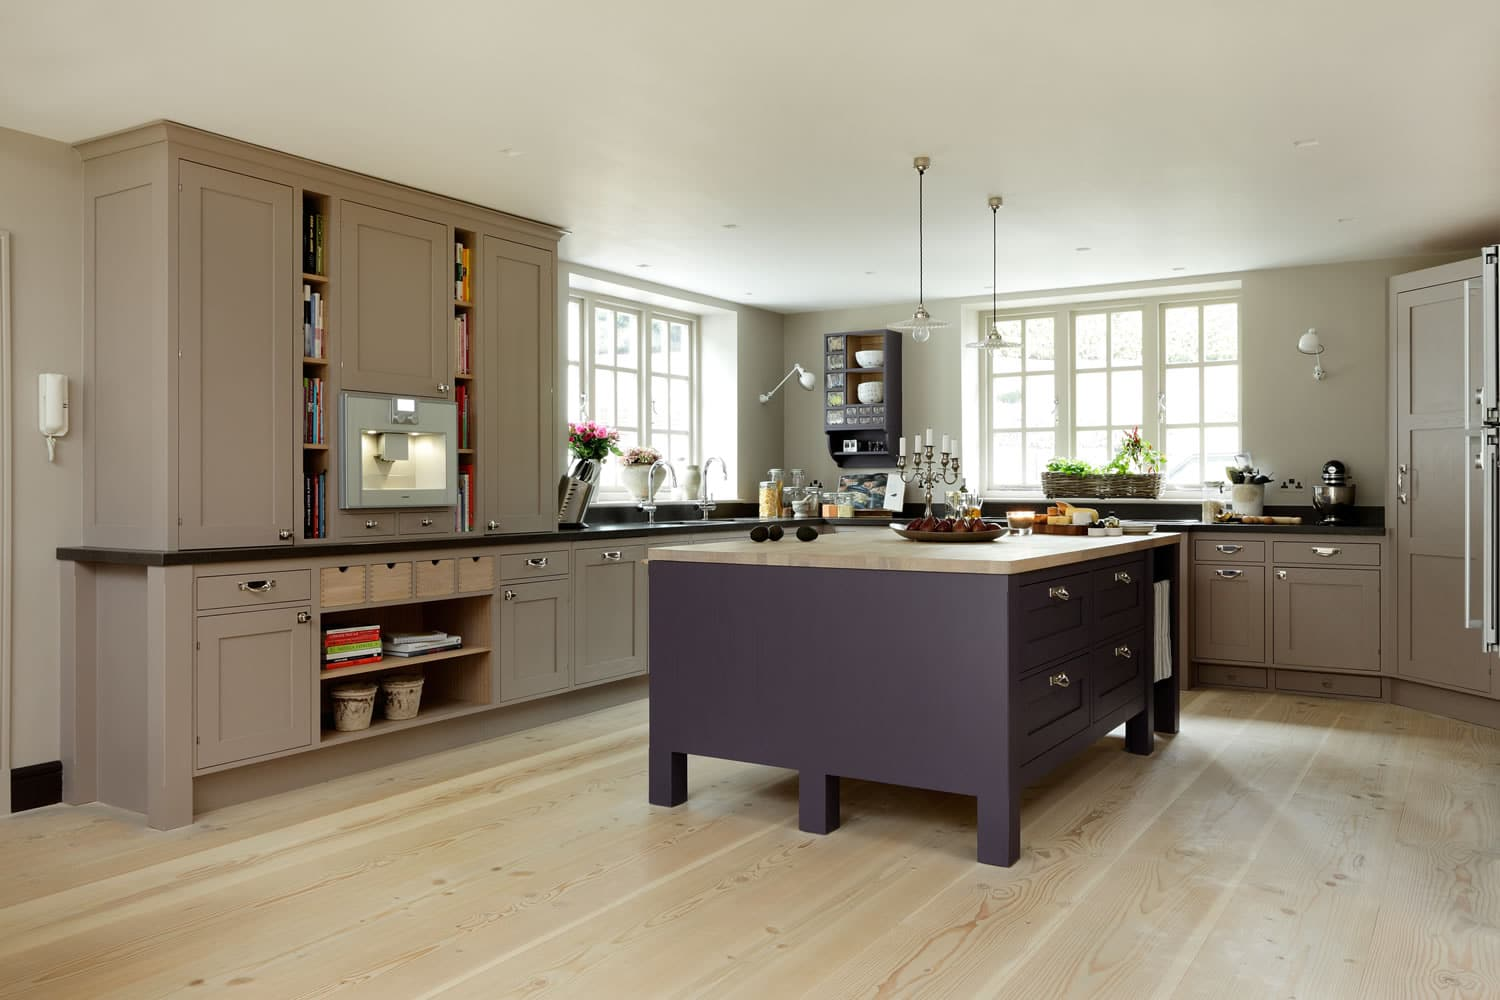 Frillen in Aubegine and Mink - Sola Kitchens | Sola Kitchens